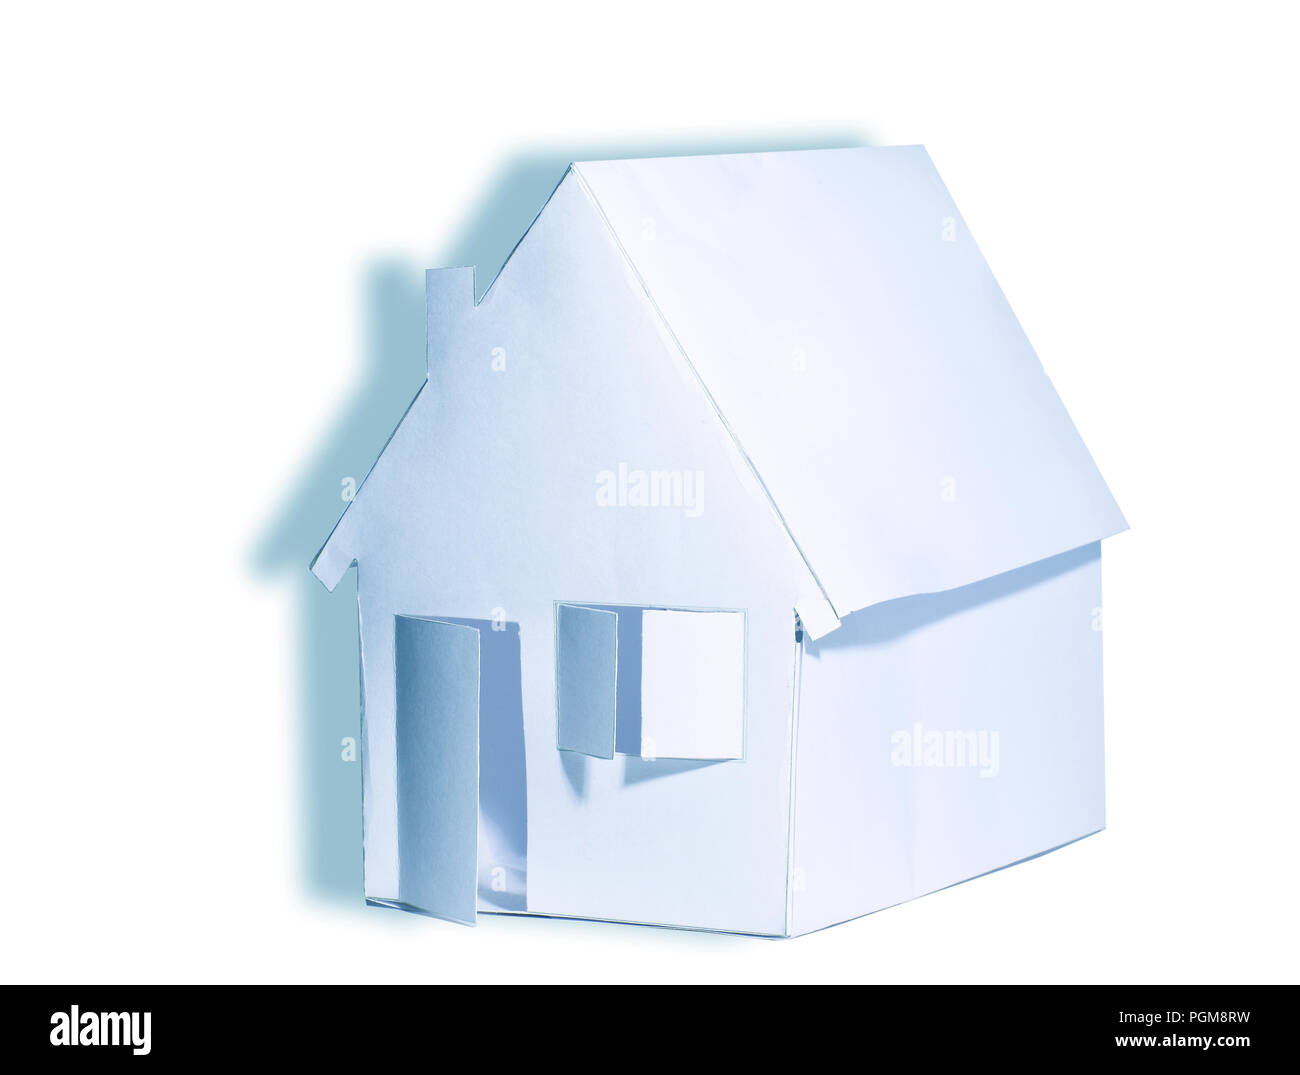 Paper house on white background - Stock Image